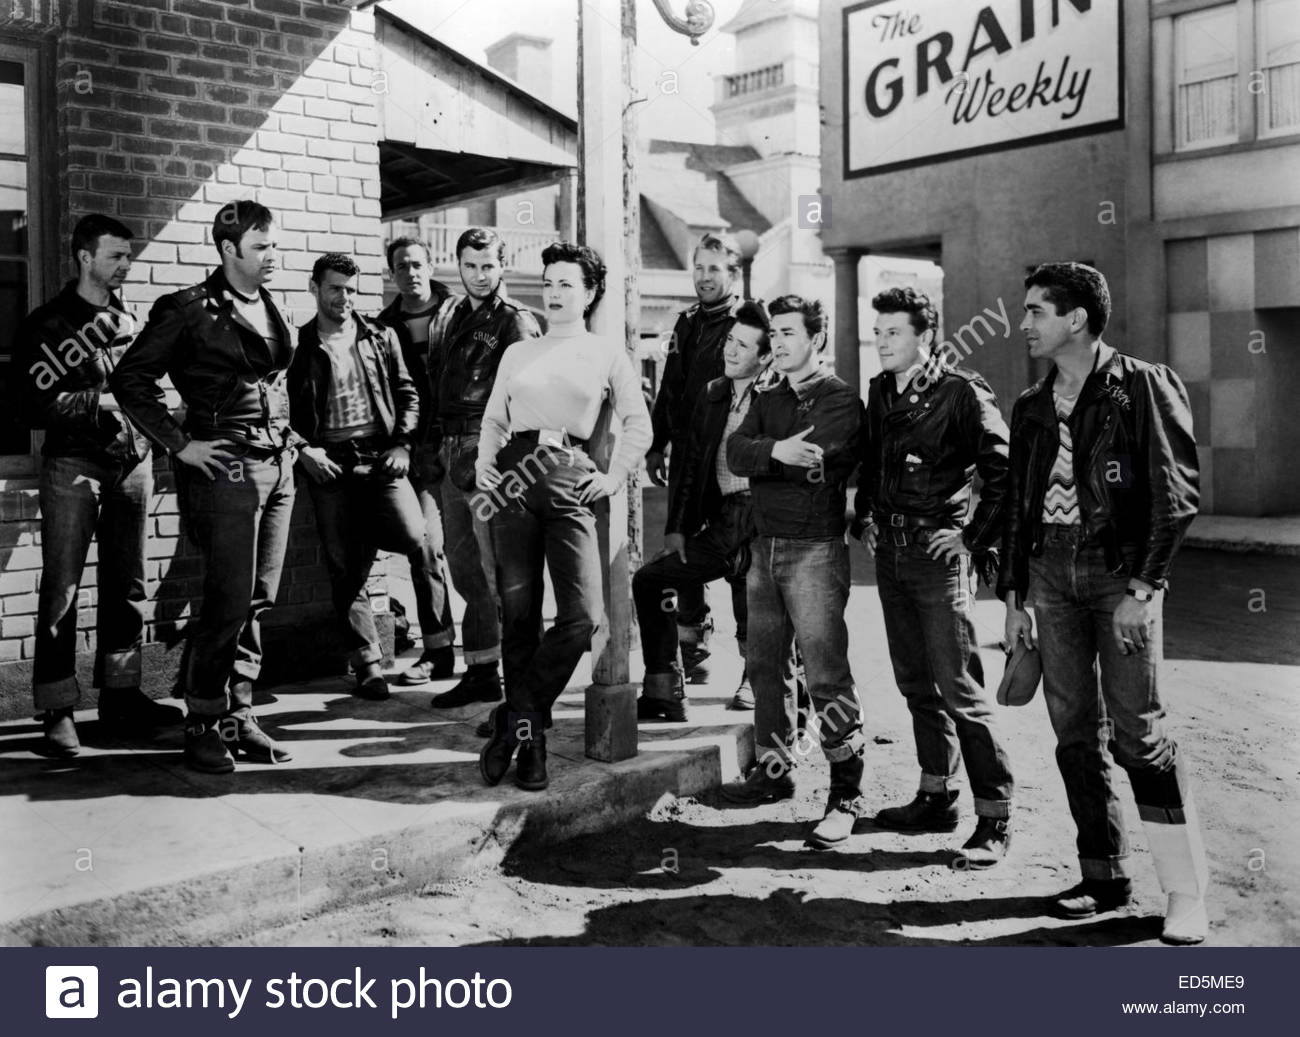 THE WILD ONE (1953).  Courtesy Granamour Weems Collection.  Editorial use only.  Licensee must obtain appropriate - Stock Image